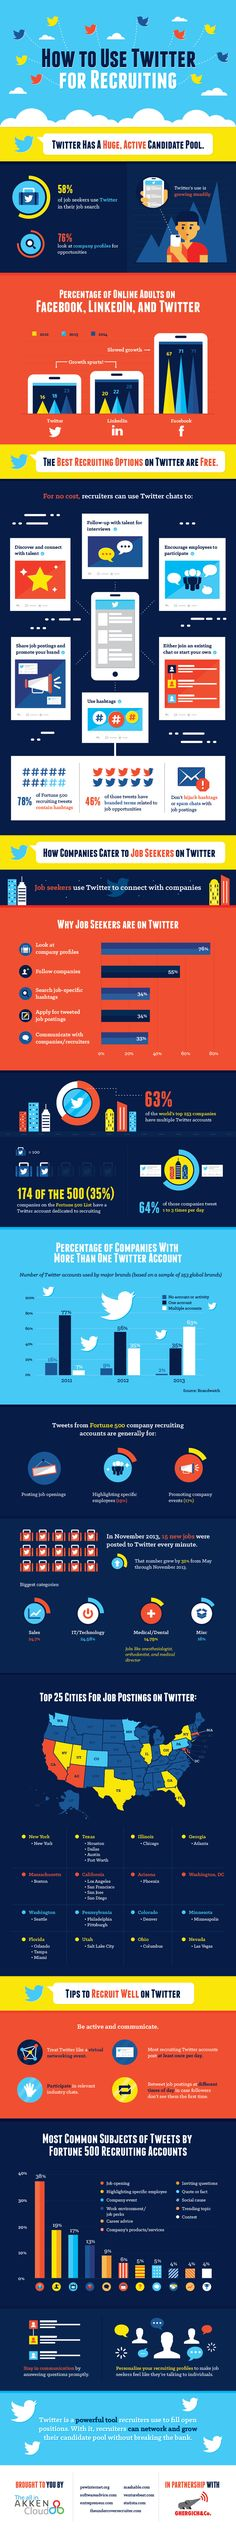 How to Use Twitter for Recruiting #infographic #Twitter #SocialMedia #HowTo #Recruiting #Career